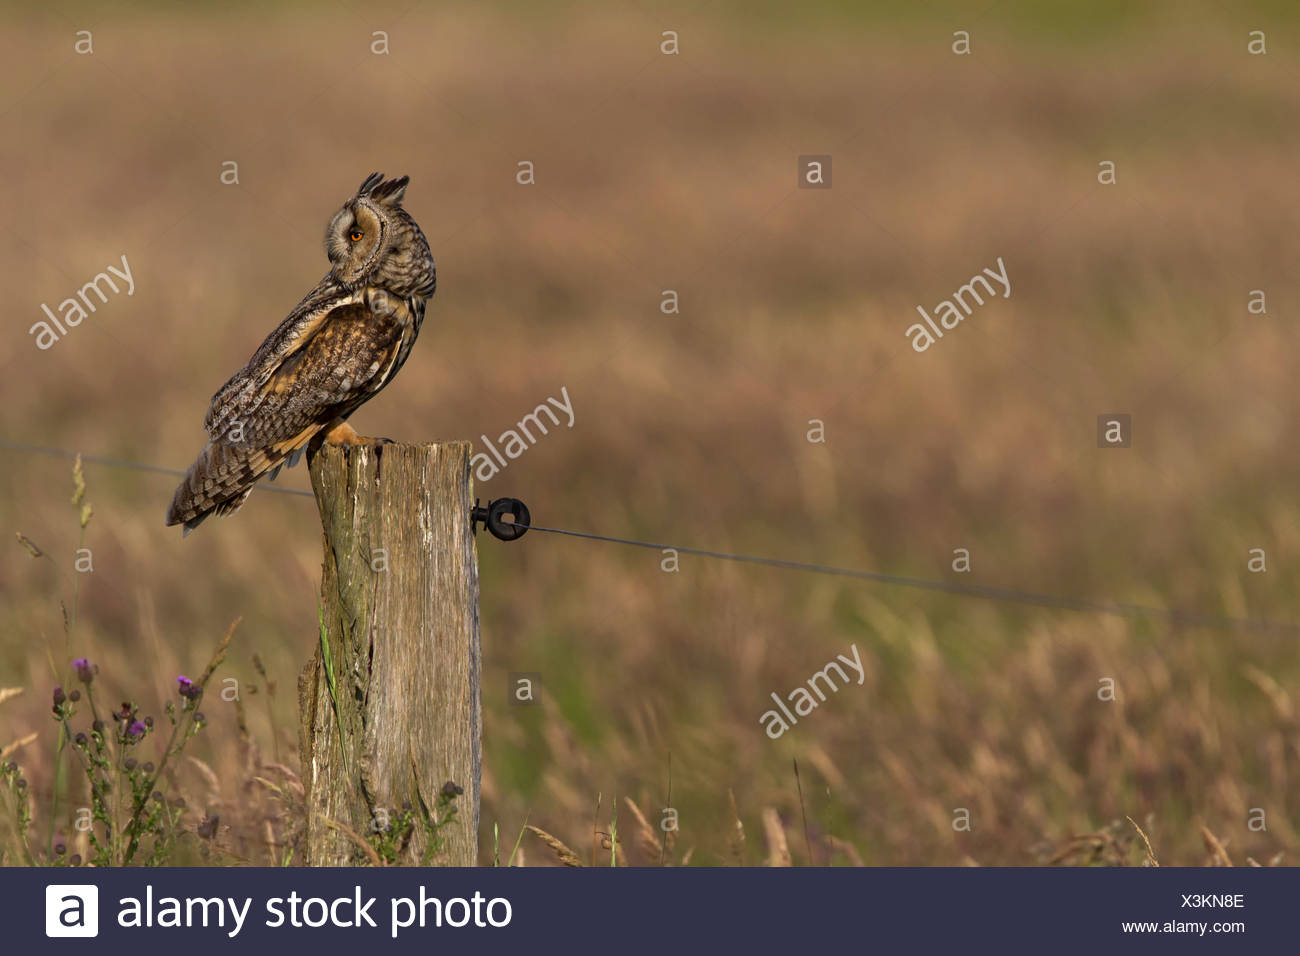 long-eared owl (Asio otus), sitting on a wooden post watching out, Germany, Lower Saxony, Langeoog - Stock Image